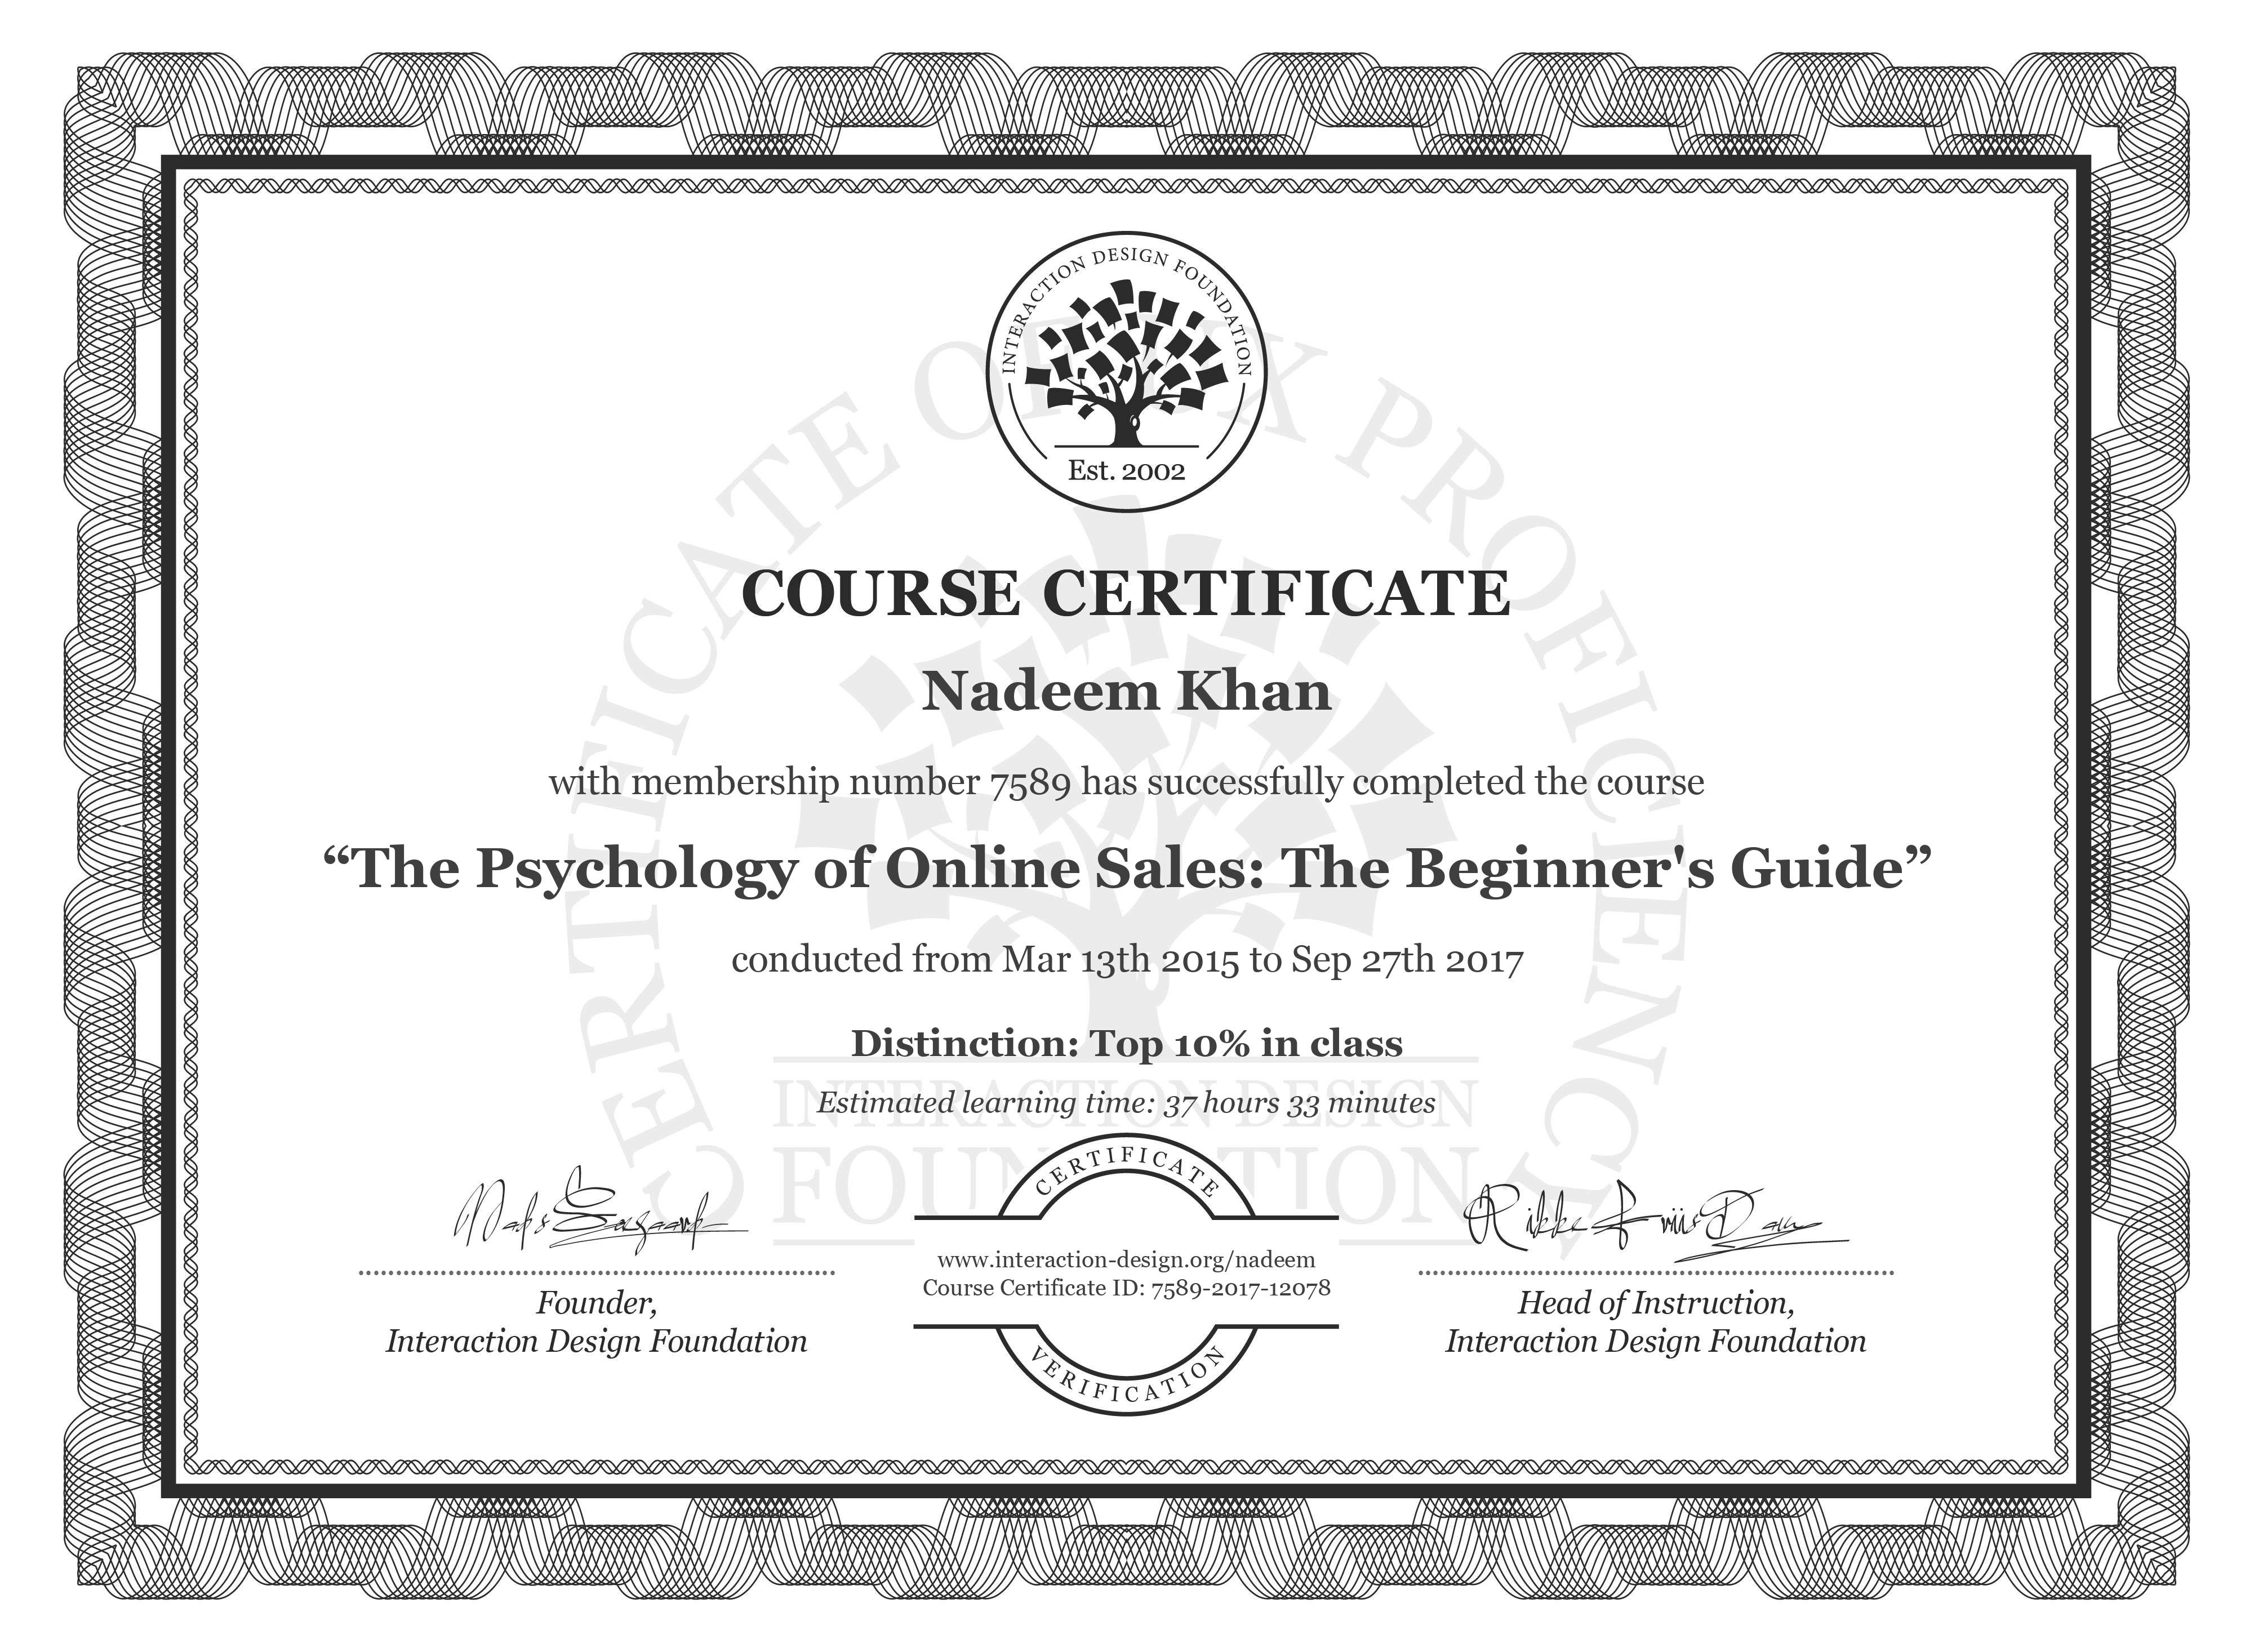 Nadeem Khan: Course Certificate - The Psychology of Online Sales: The Beginner's Guide